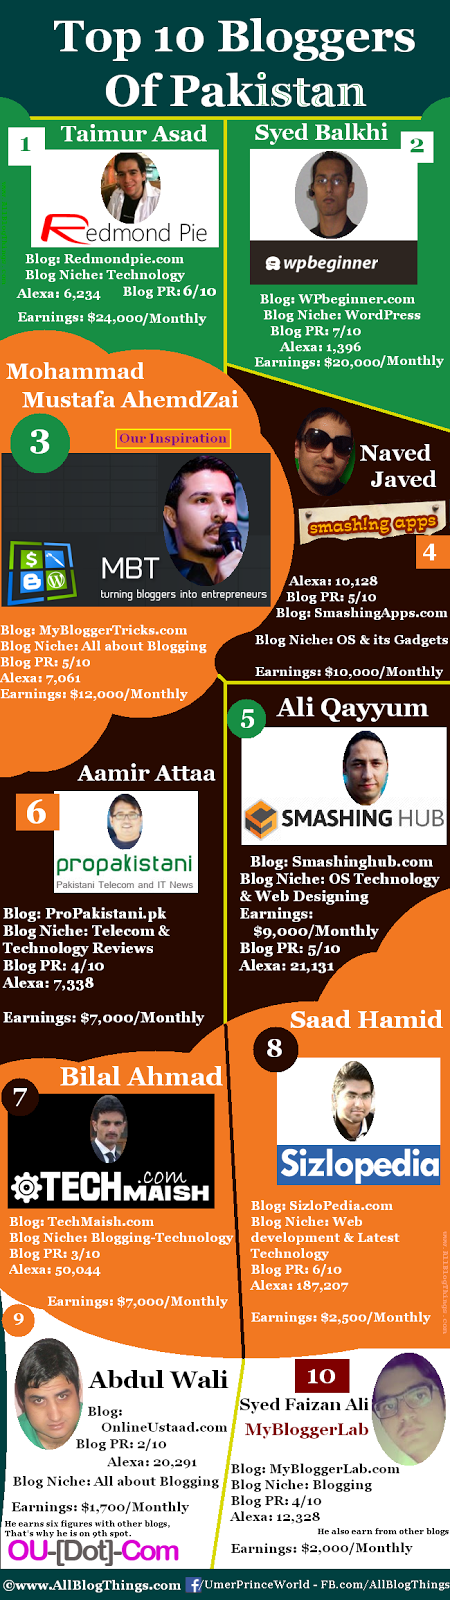 Top 10 Pakistani Bloggers In 2018 - Infographic